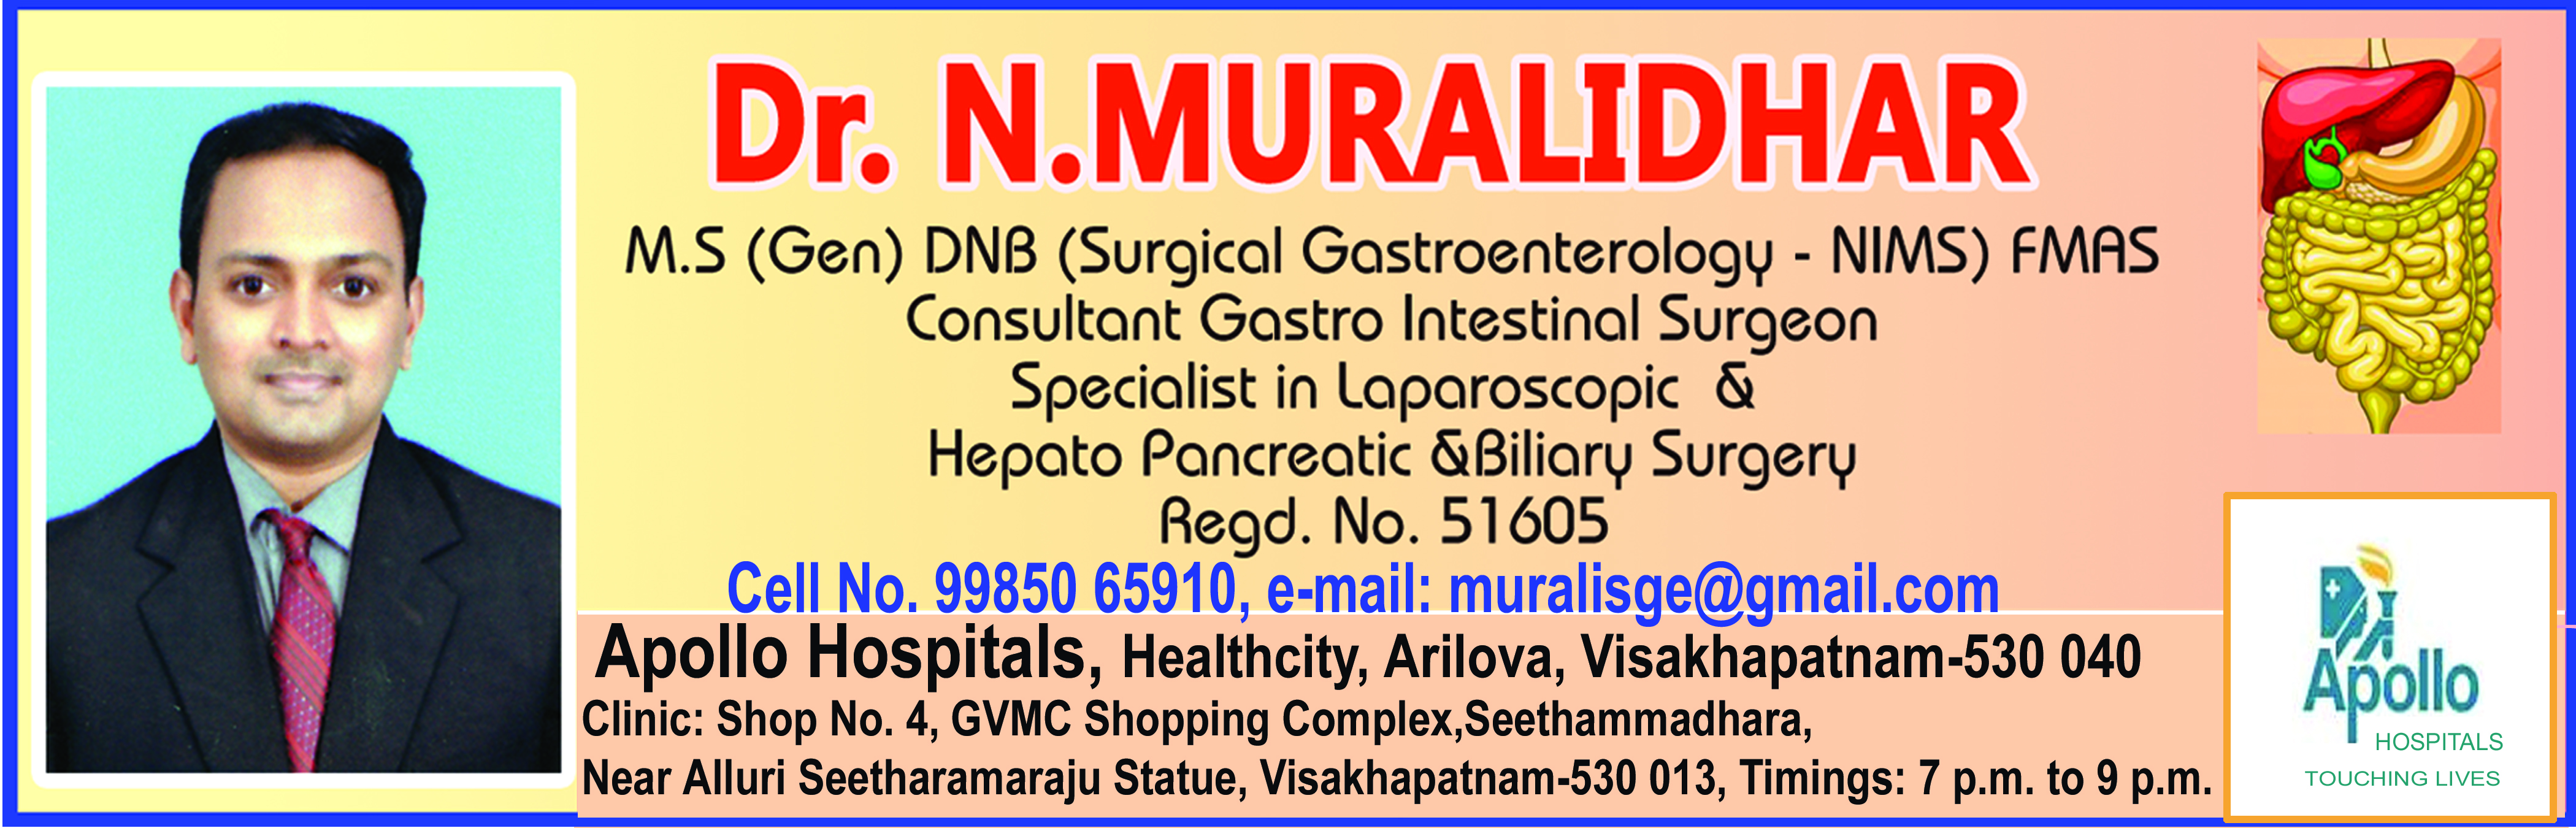 Doctor Pages - New India Info Services